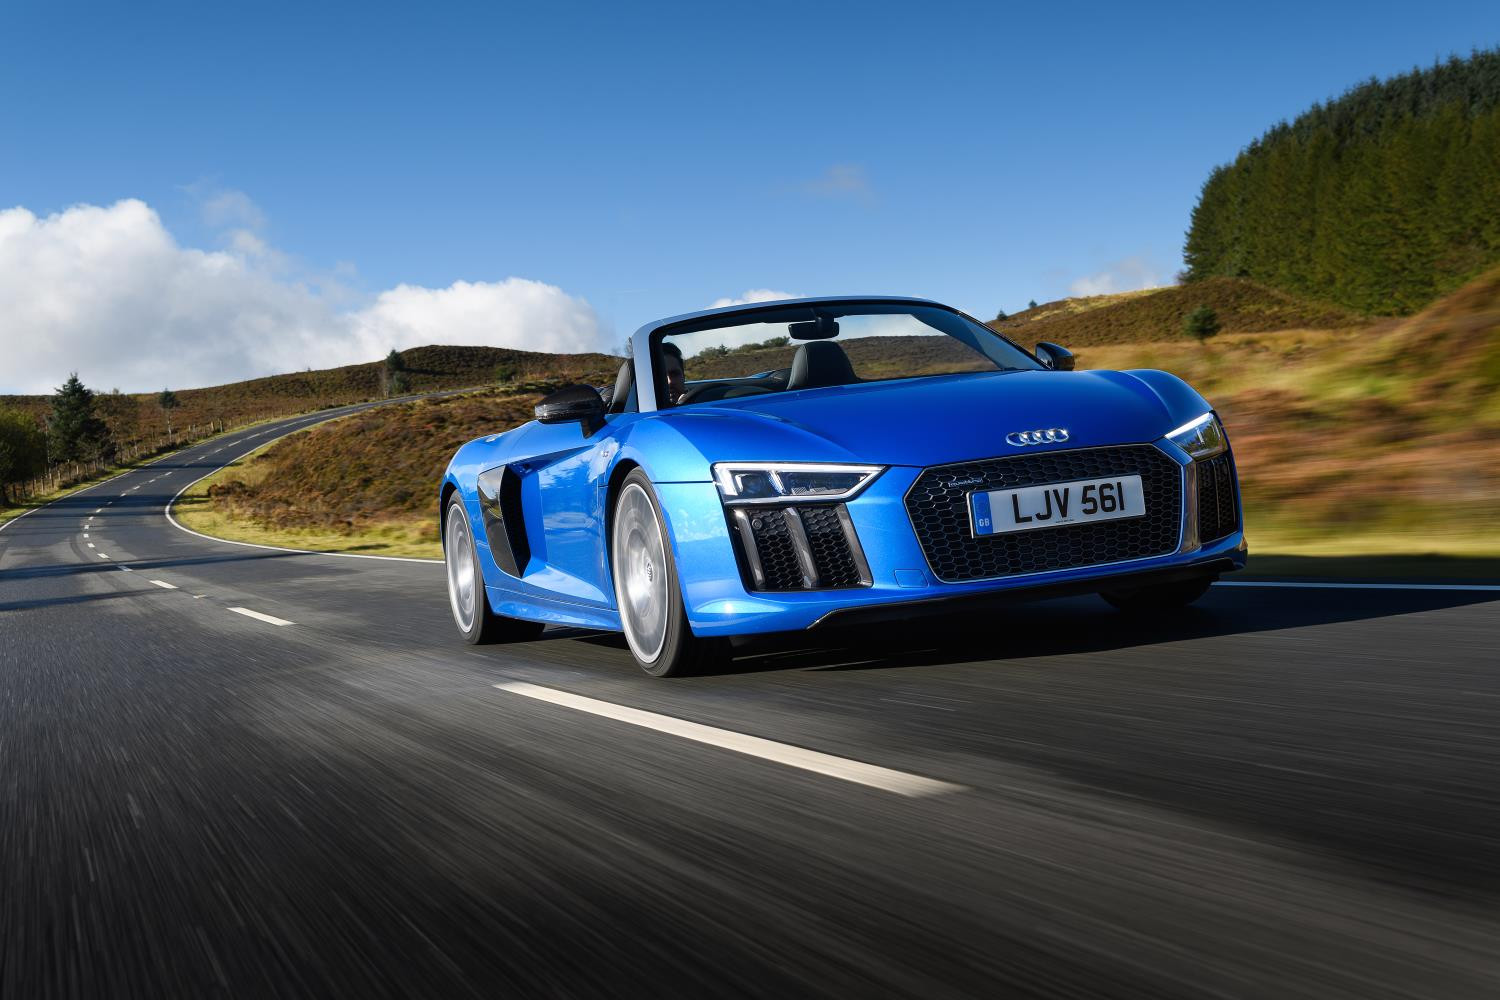 Bright blue metallic Audi R8 spyder whizzing along a country lane